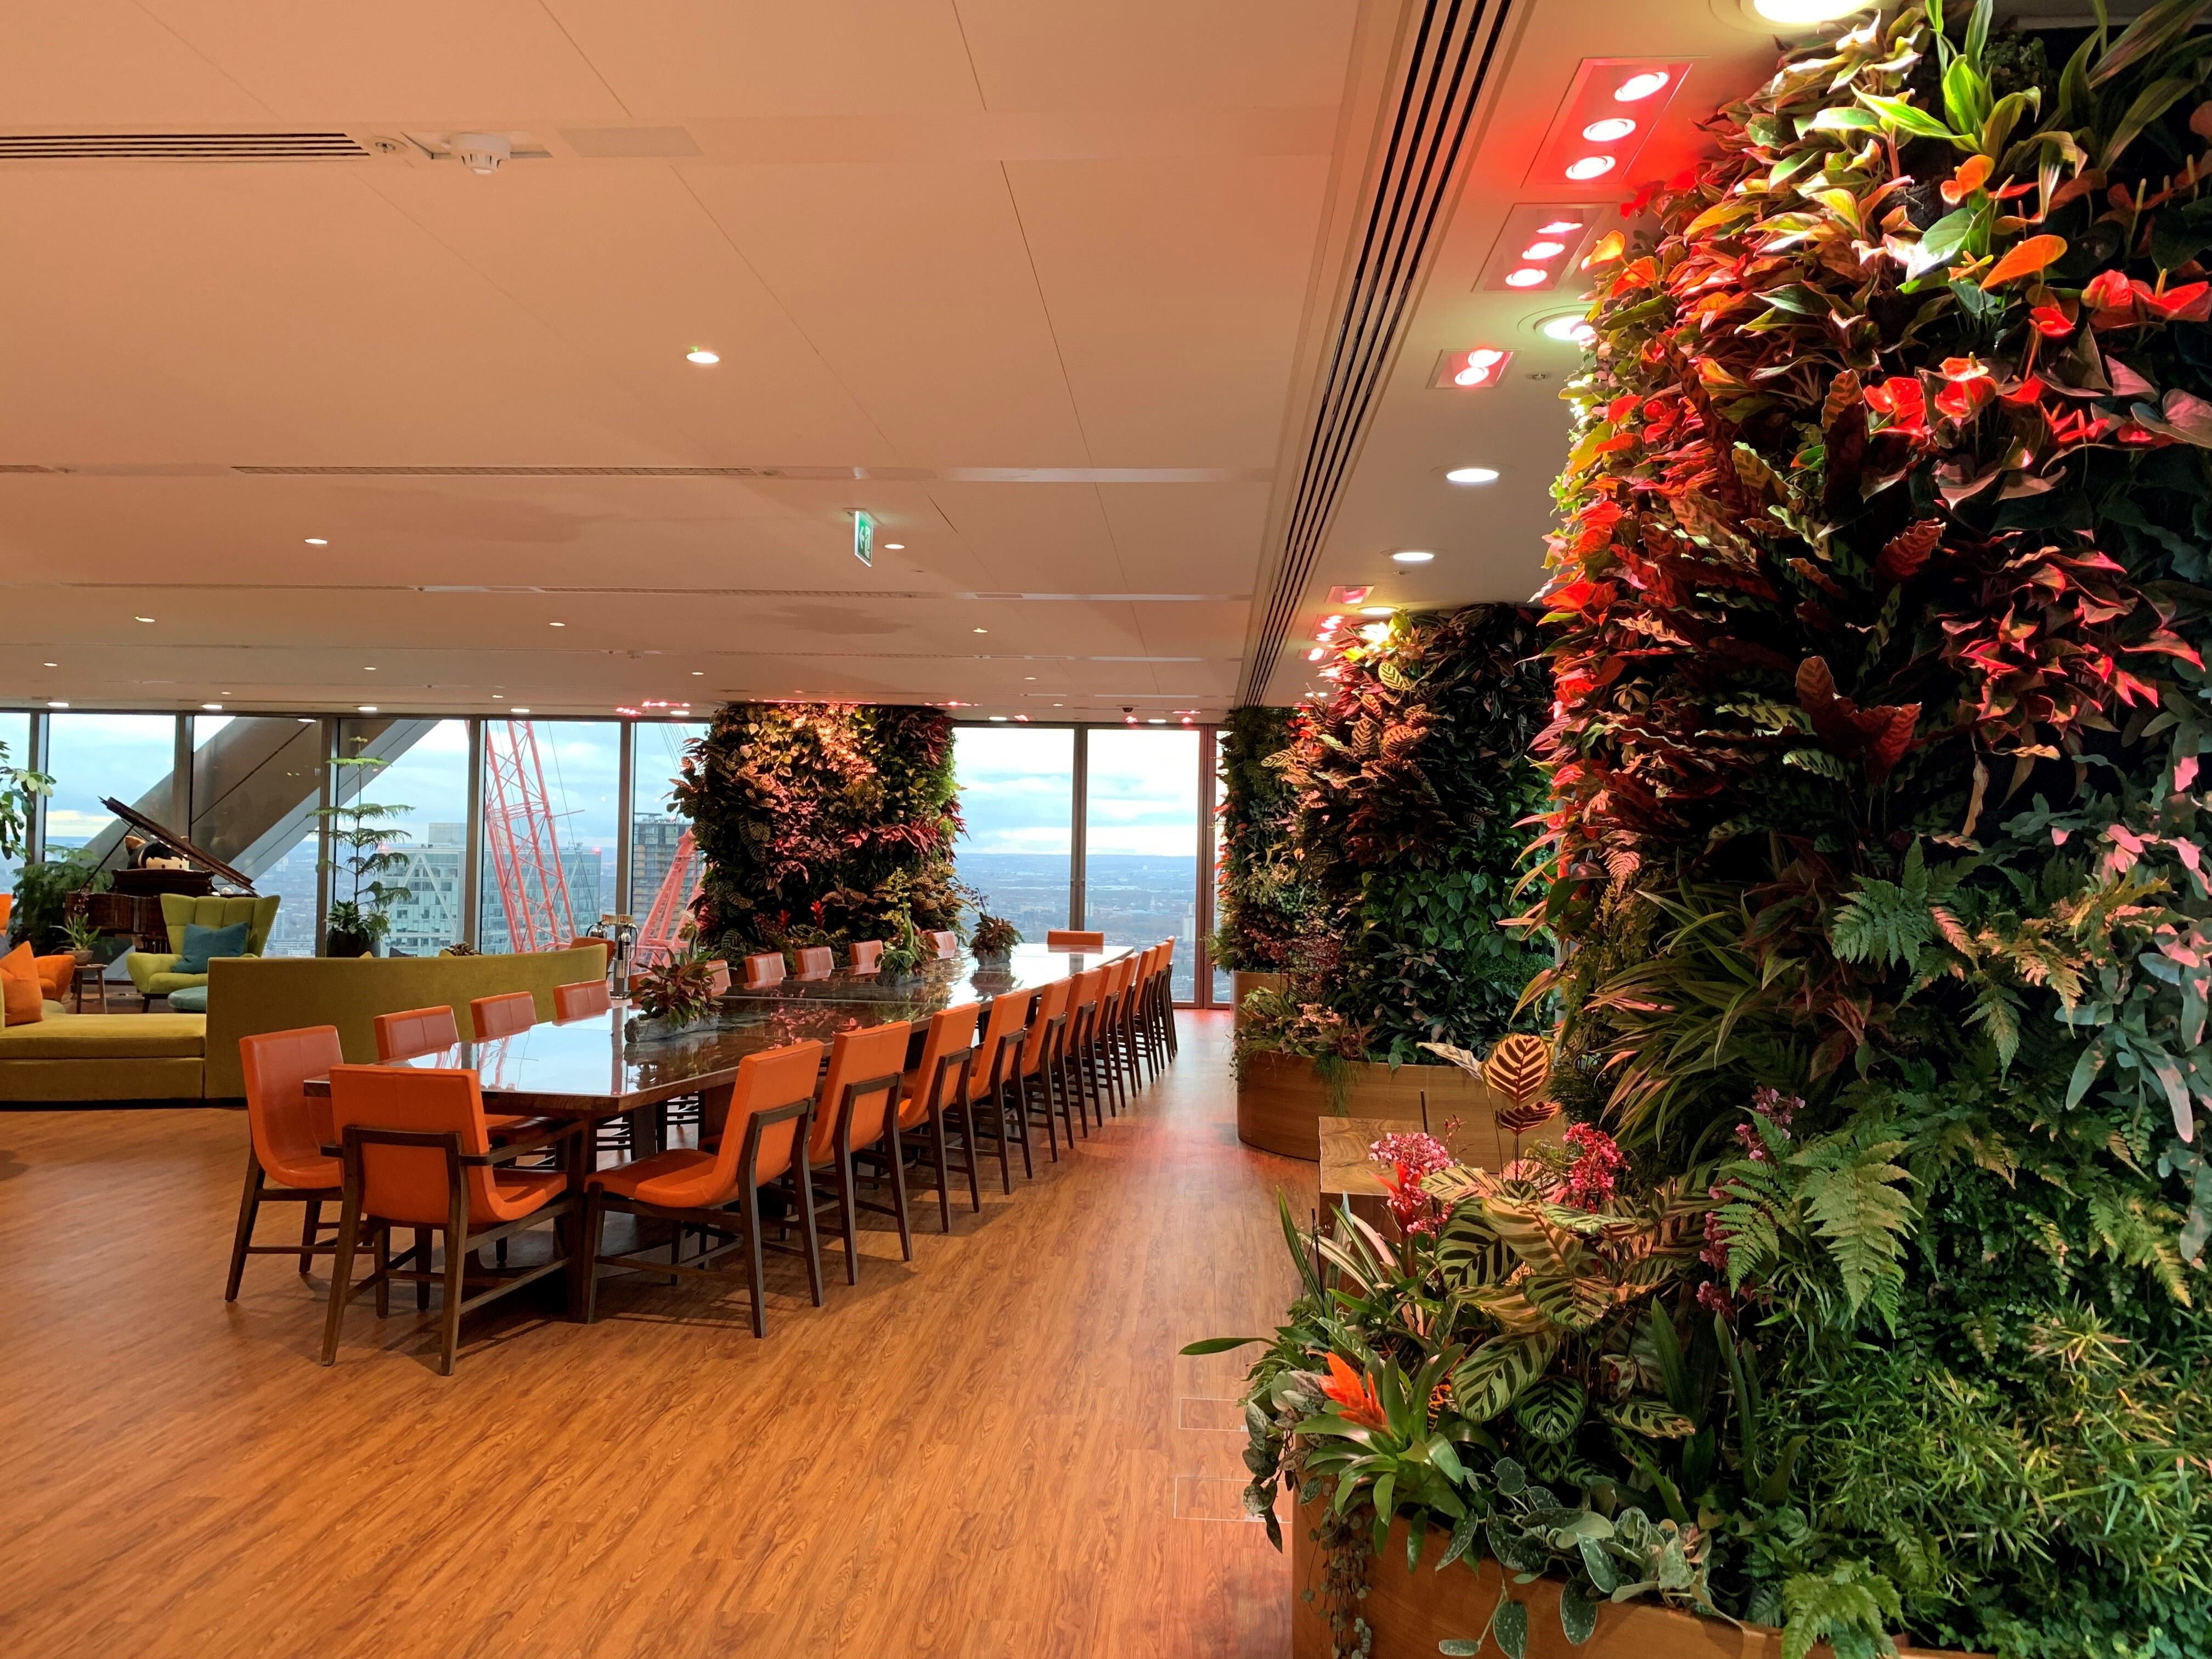 Salesforce boardroom planting with living walls